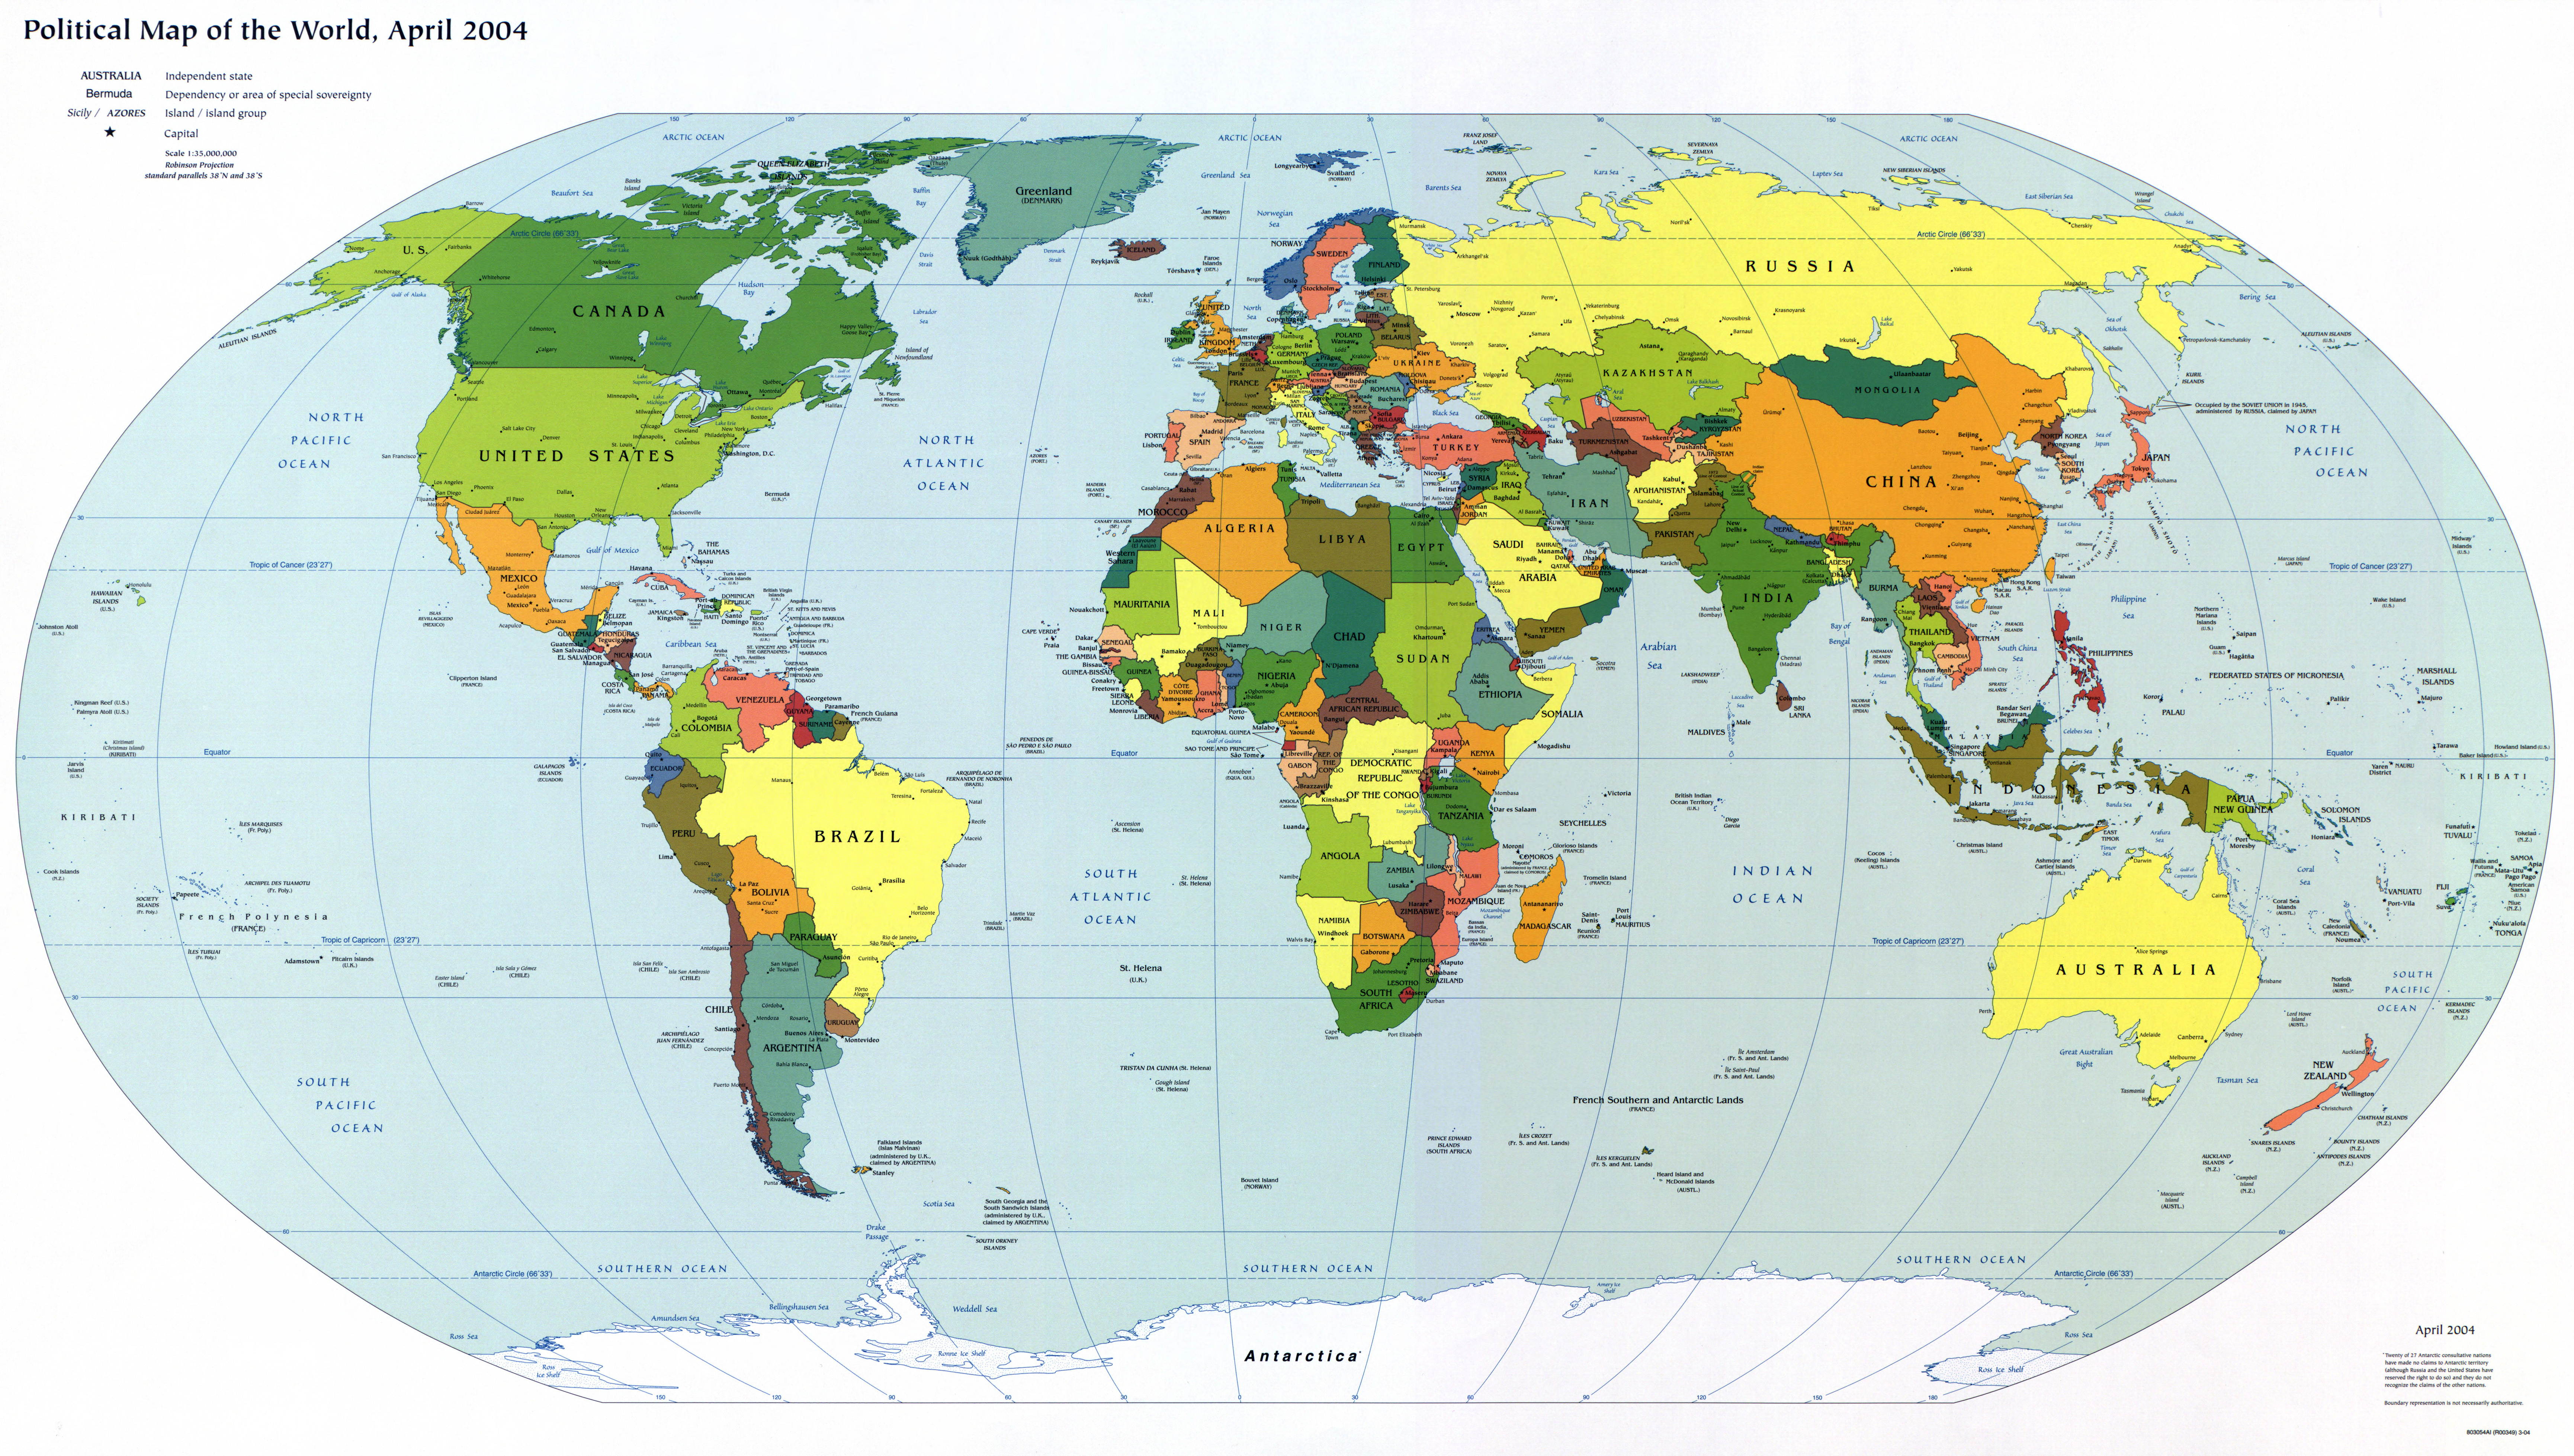 Map Of The World Detailed.Large Detailed Political Map Of The World With Capitals And Major